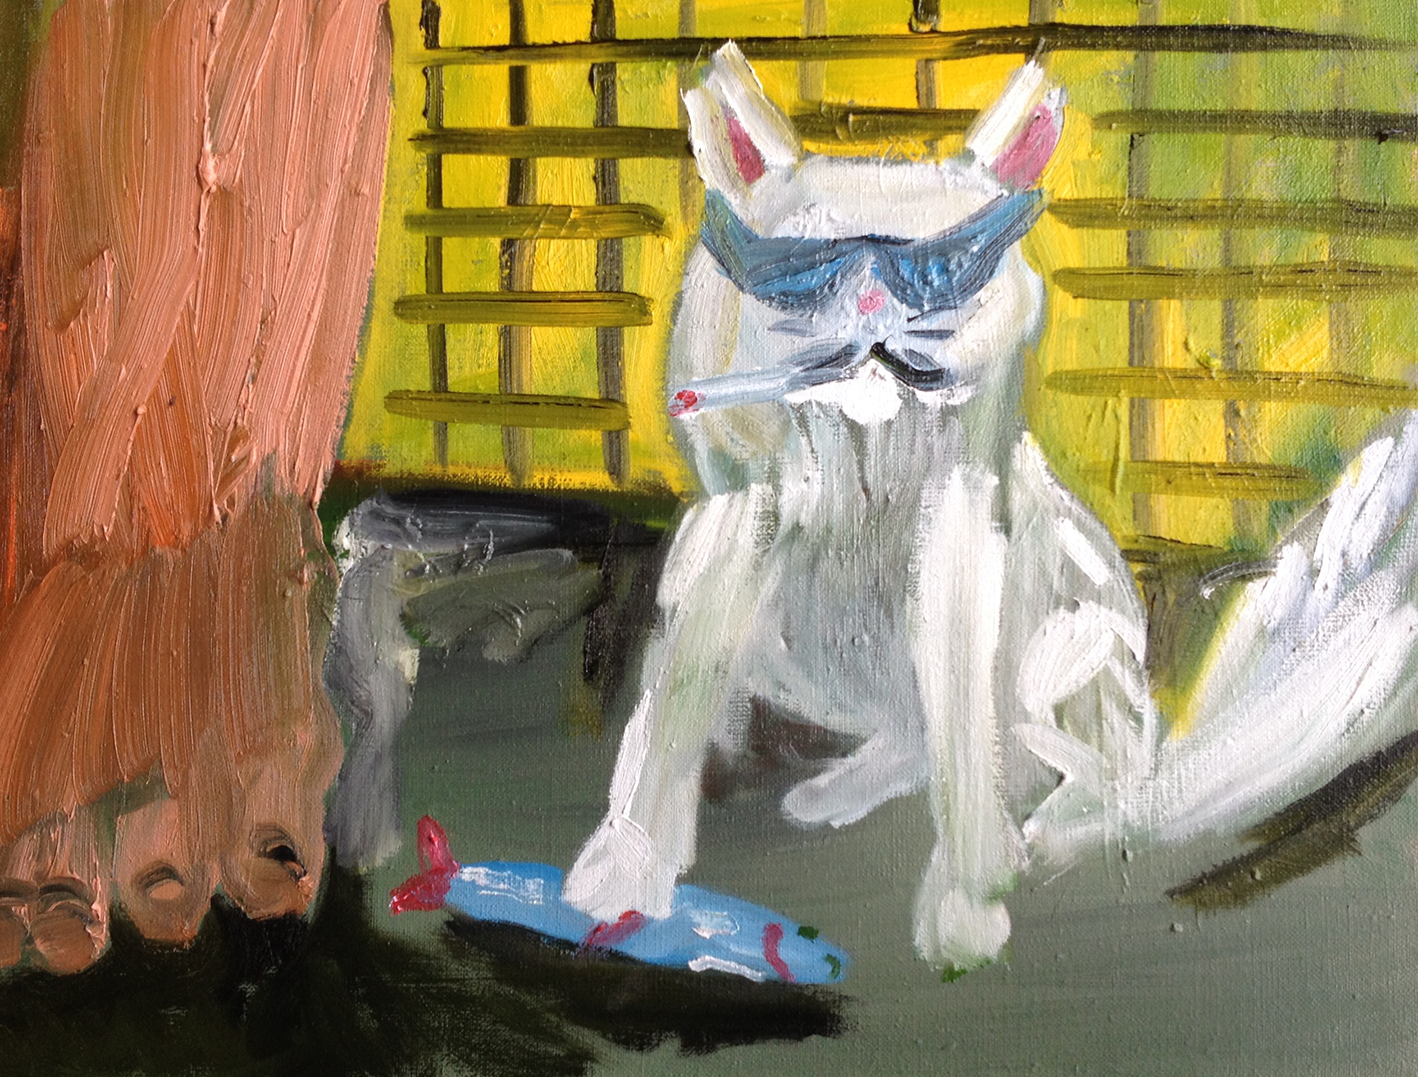 Kalle Leino - Coolest cat 47 x 60,5 cm, oil o canvas, 2017